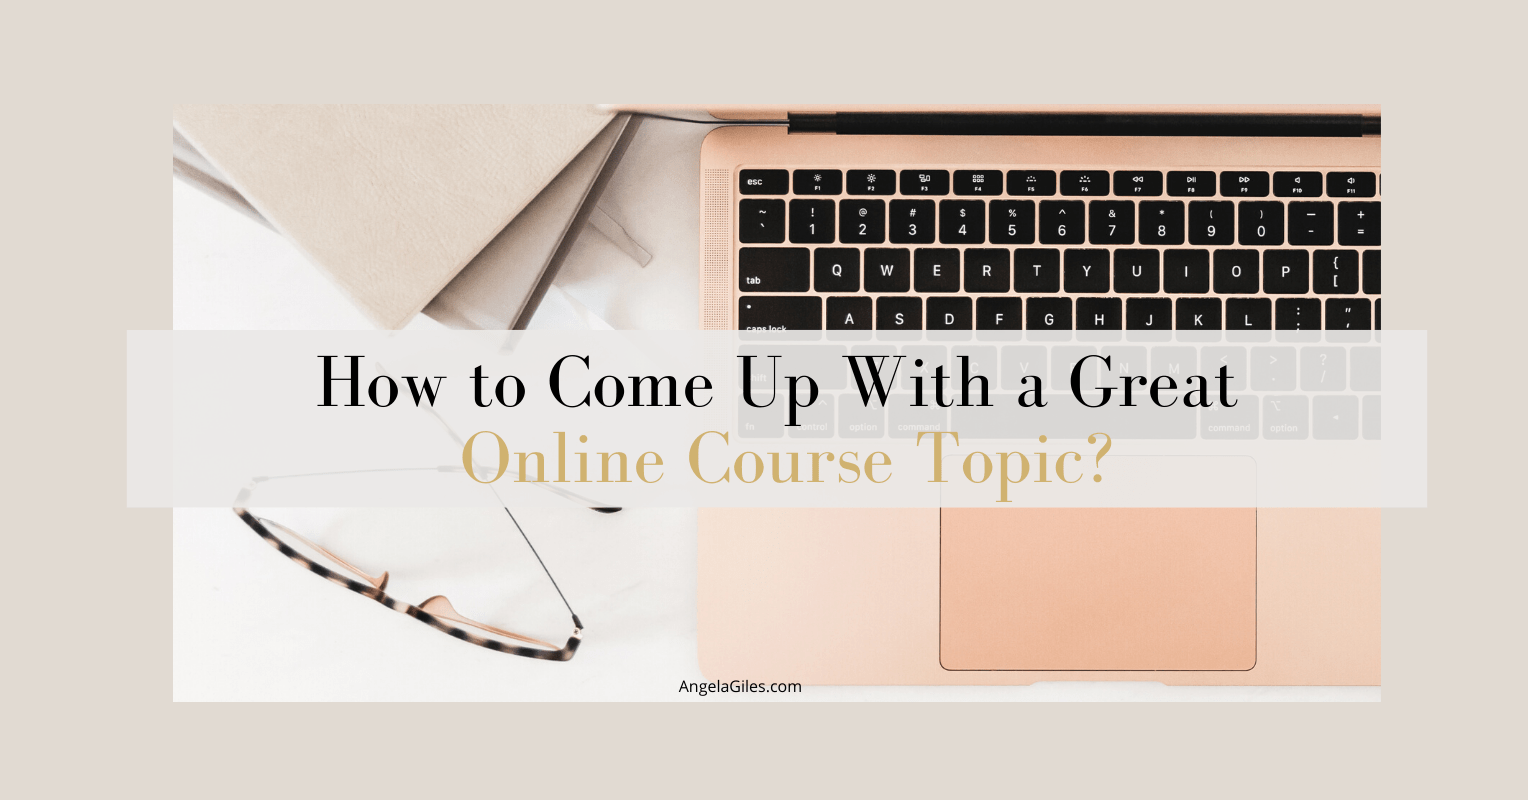 How to Come Up With a Great Online Course Topic